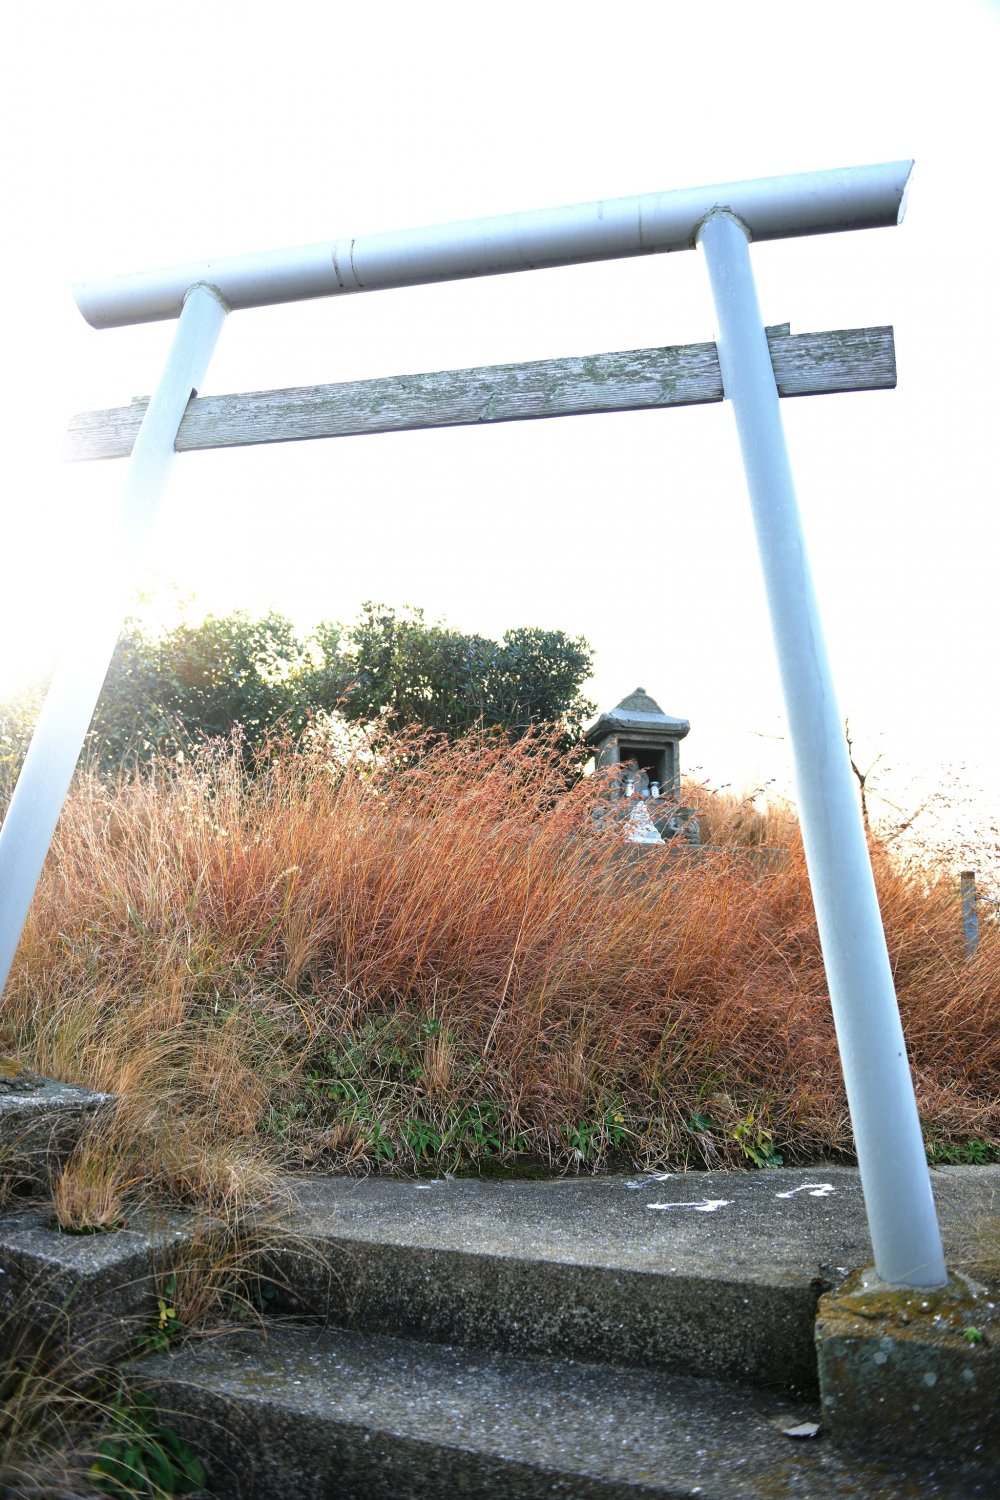 The statue of the Virgin Mary is standing on rock jutting out into the sea. This rock is commonly called 'Donc Rock', and an Ebisu Shrine also stands on this rock.